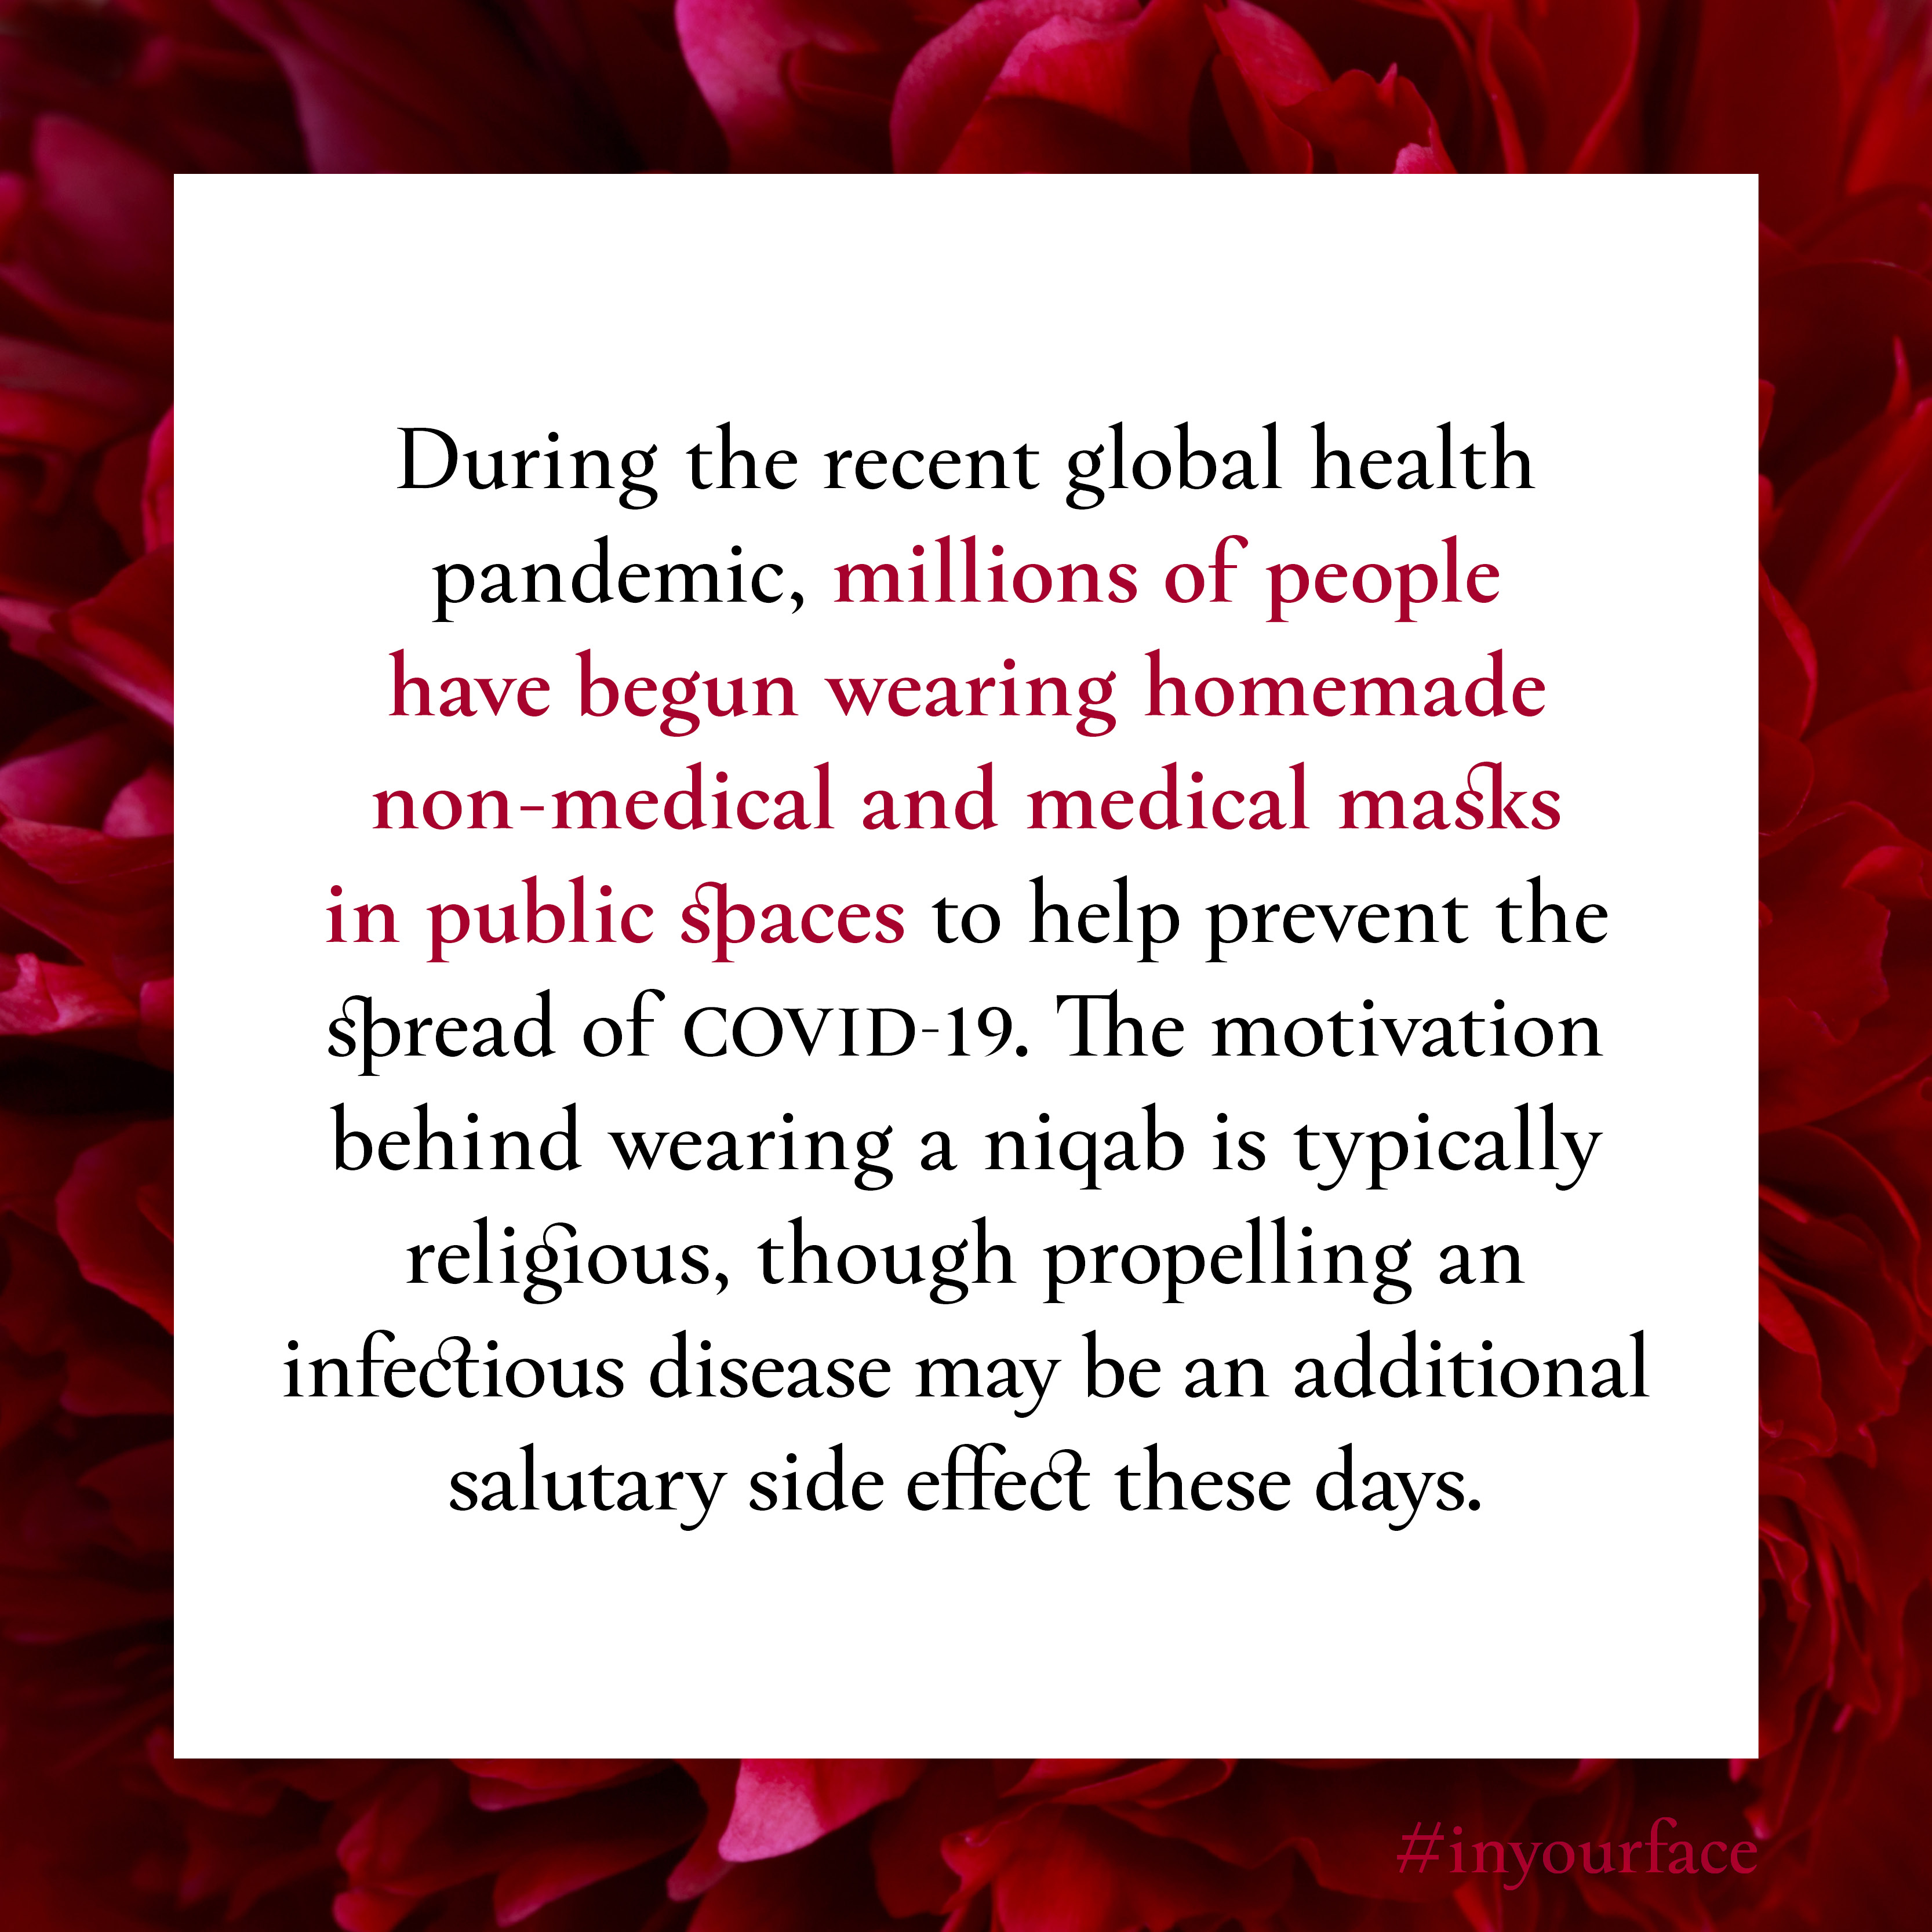 """Excerpt from In Your Face by Natasha Bakht. It reads: """"During the recent global health pandemic, millions of people have begun wearing homemade non‑medical and medical masks in public spaces to help prevent the spread of COVID-19. The motivation behind wearing a niqab is typically religious, though propelling an infectious disease may be an additional salutary side effect these days. """""""